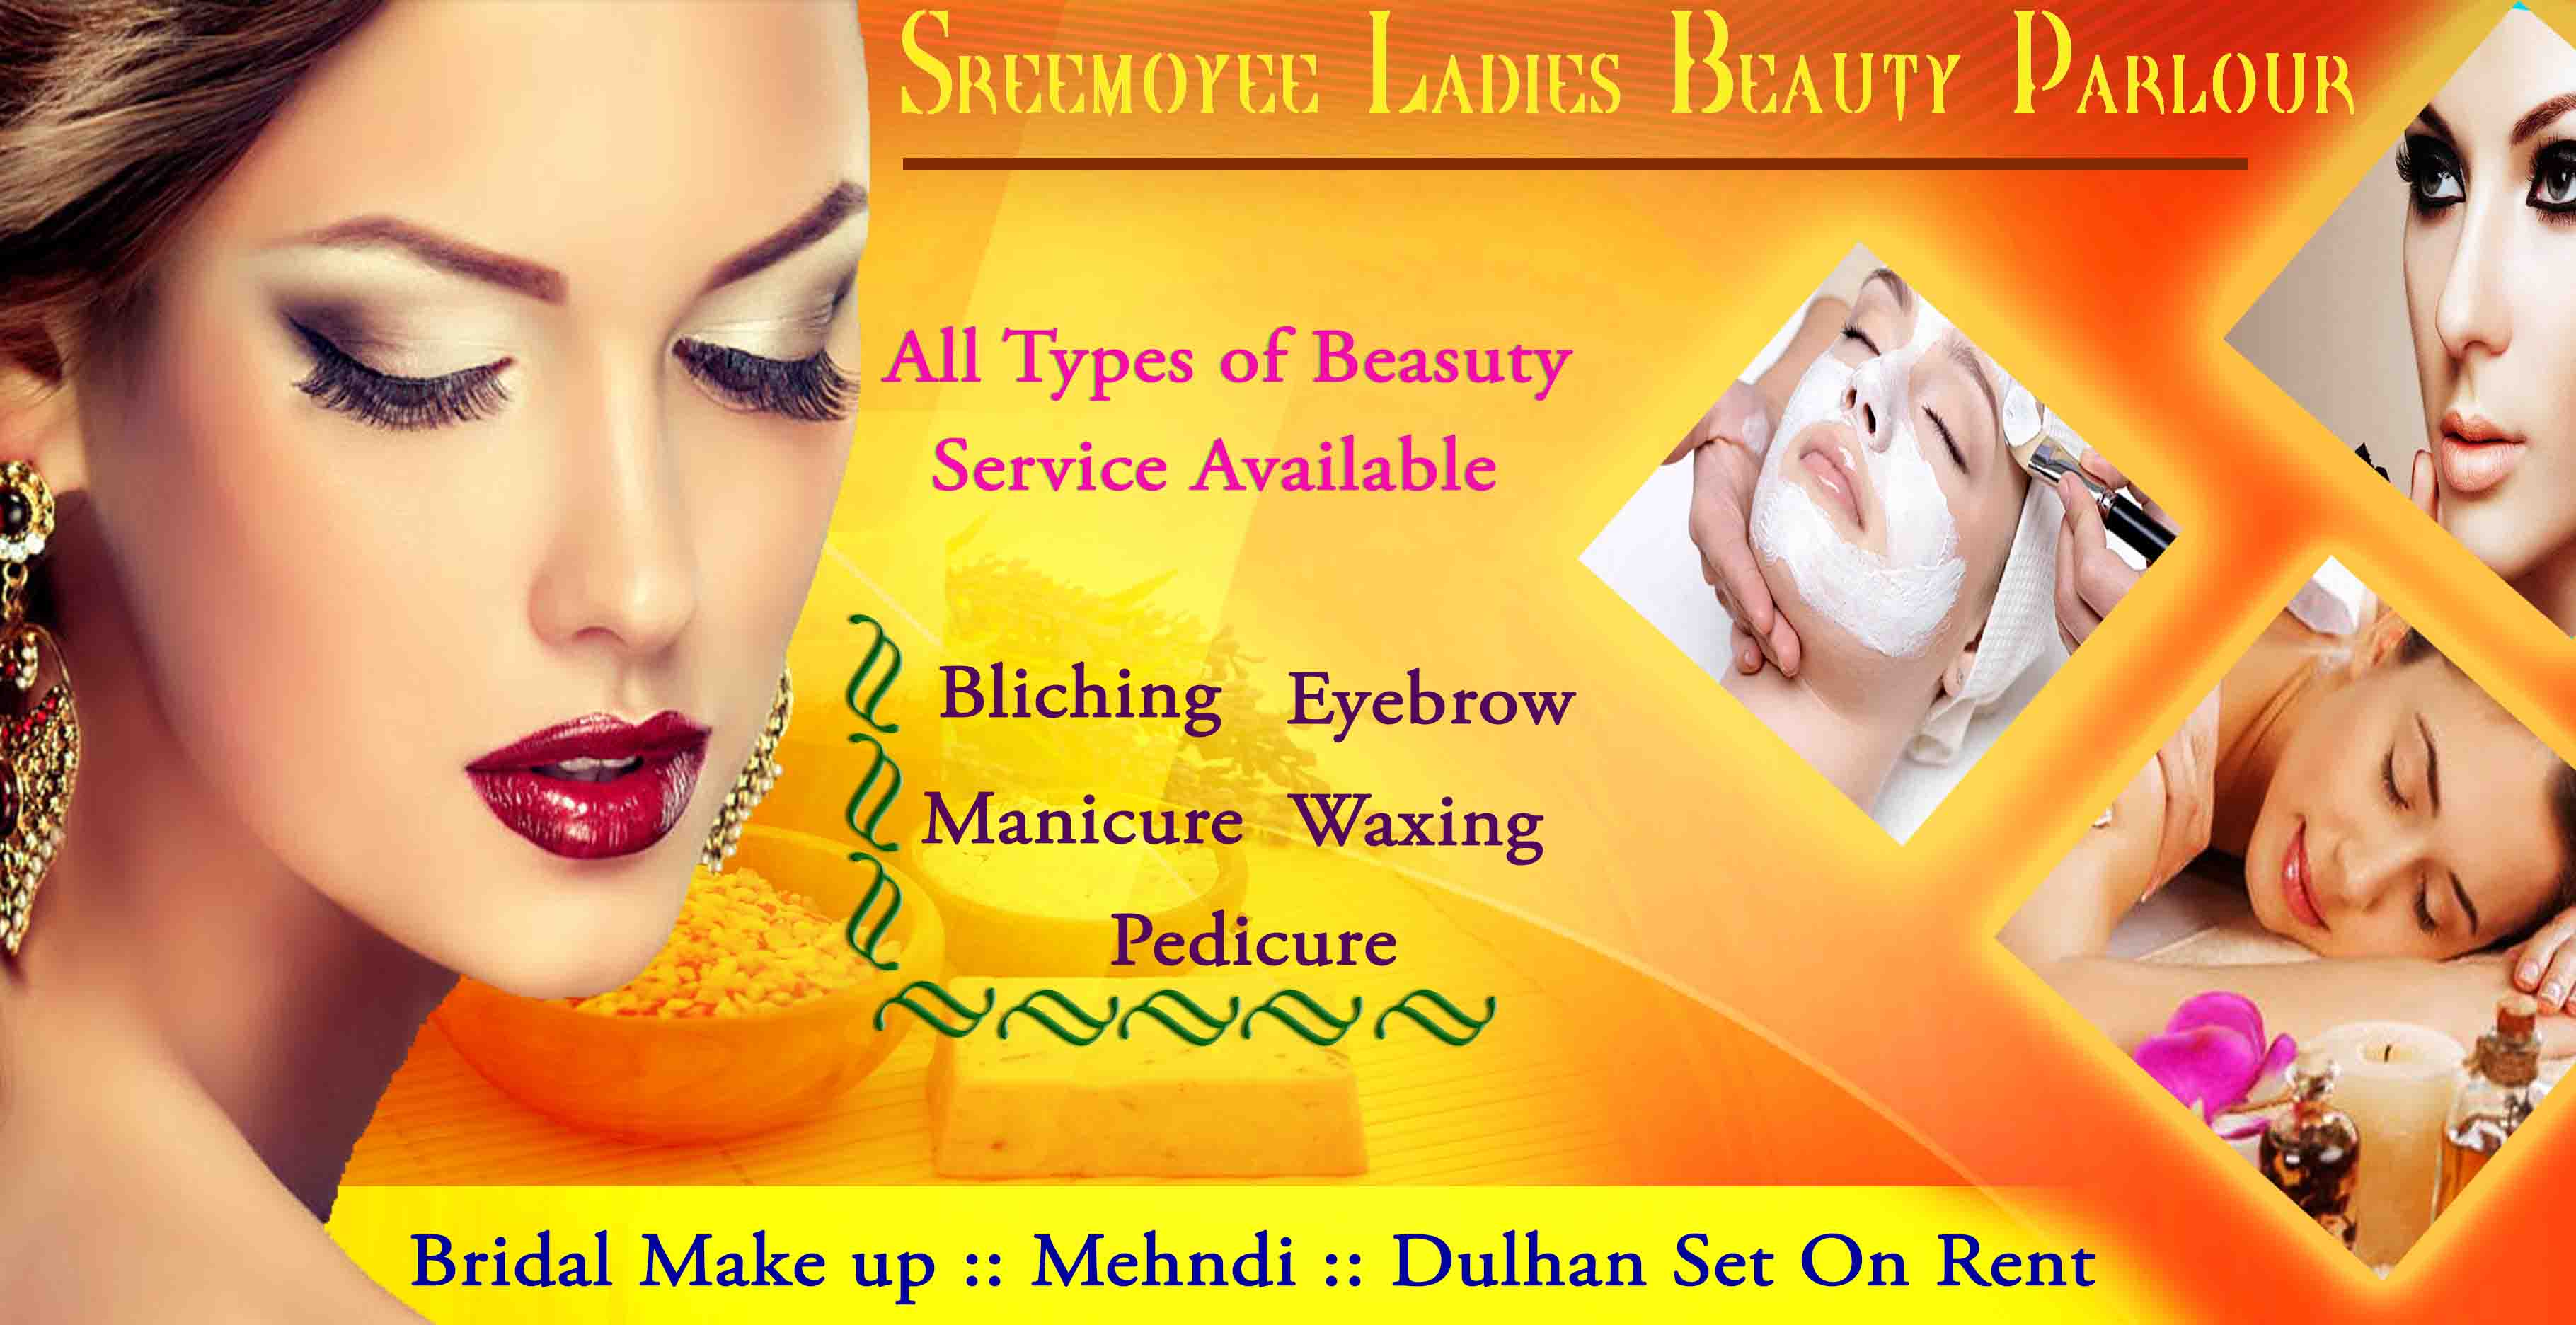 Beauty Parlour Banner Design Picture Density